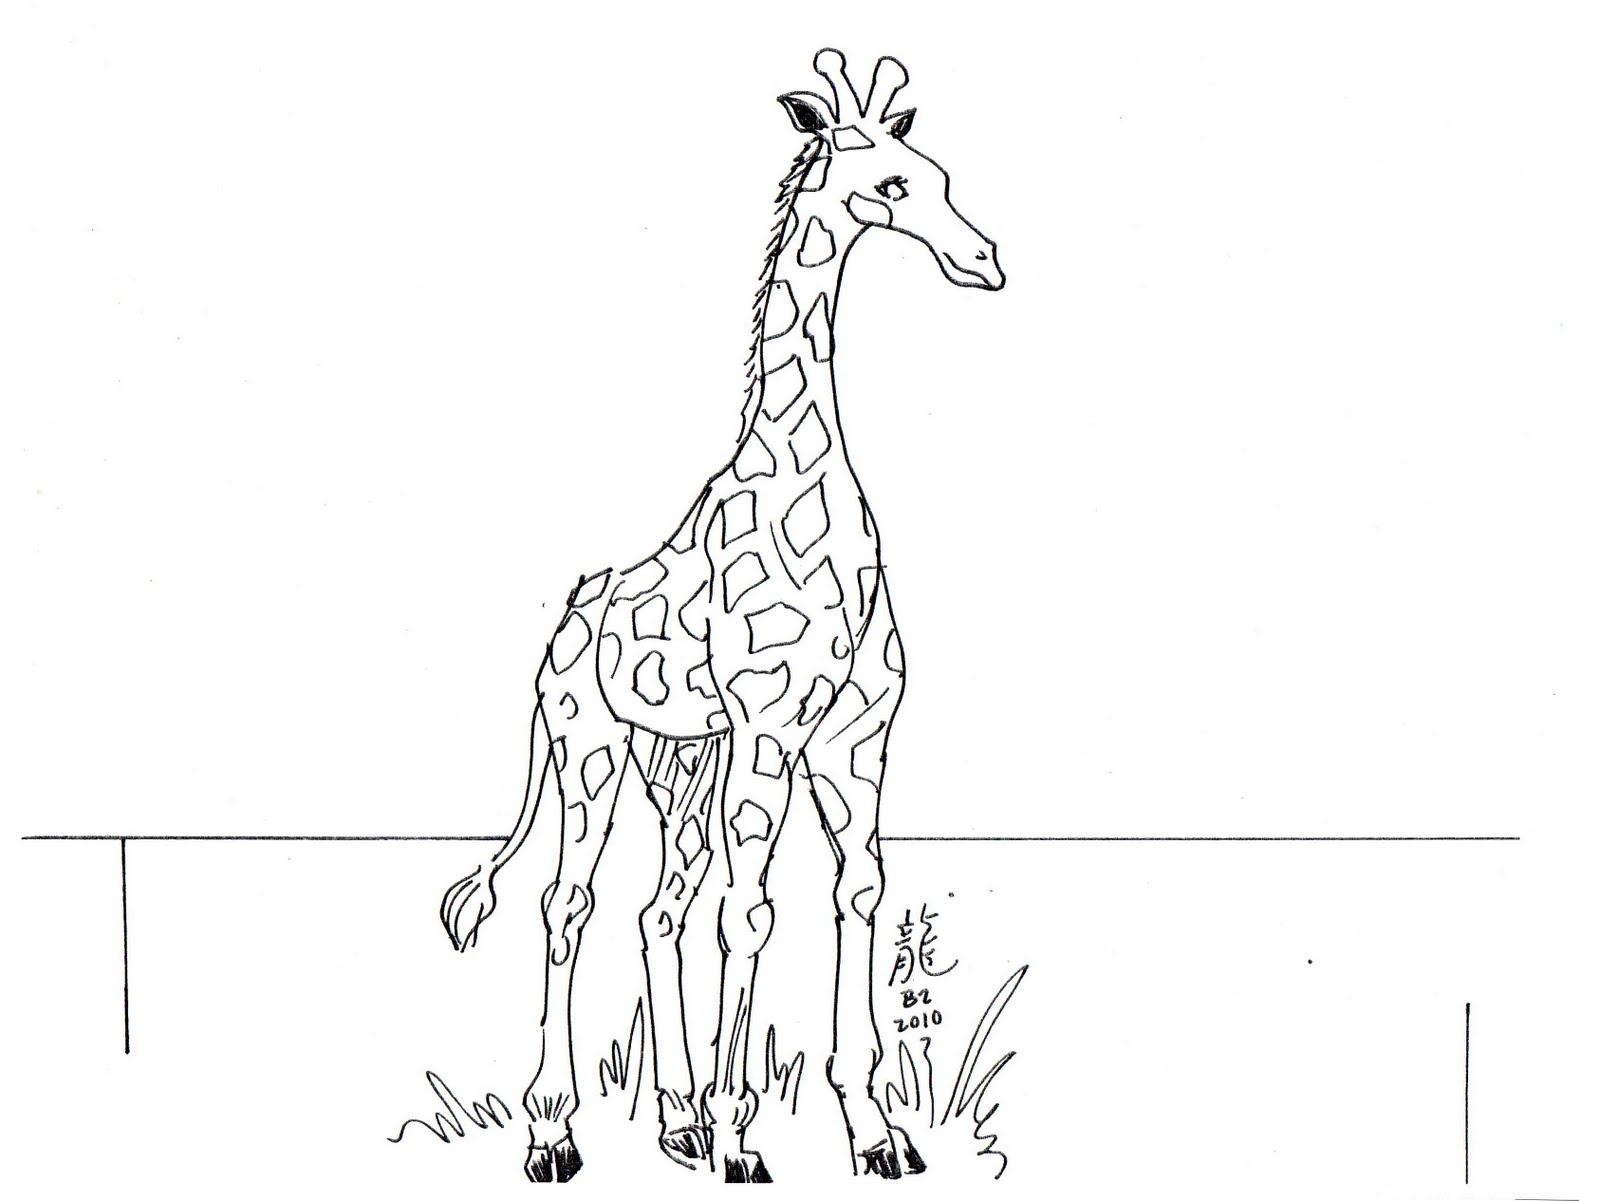 giraffe coloring page for kids pictures - Picture Painting For Kids